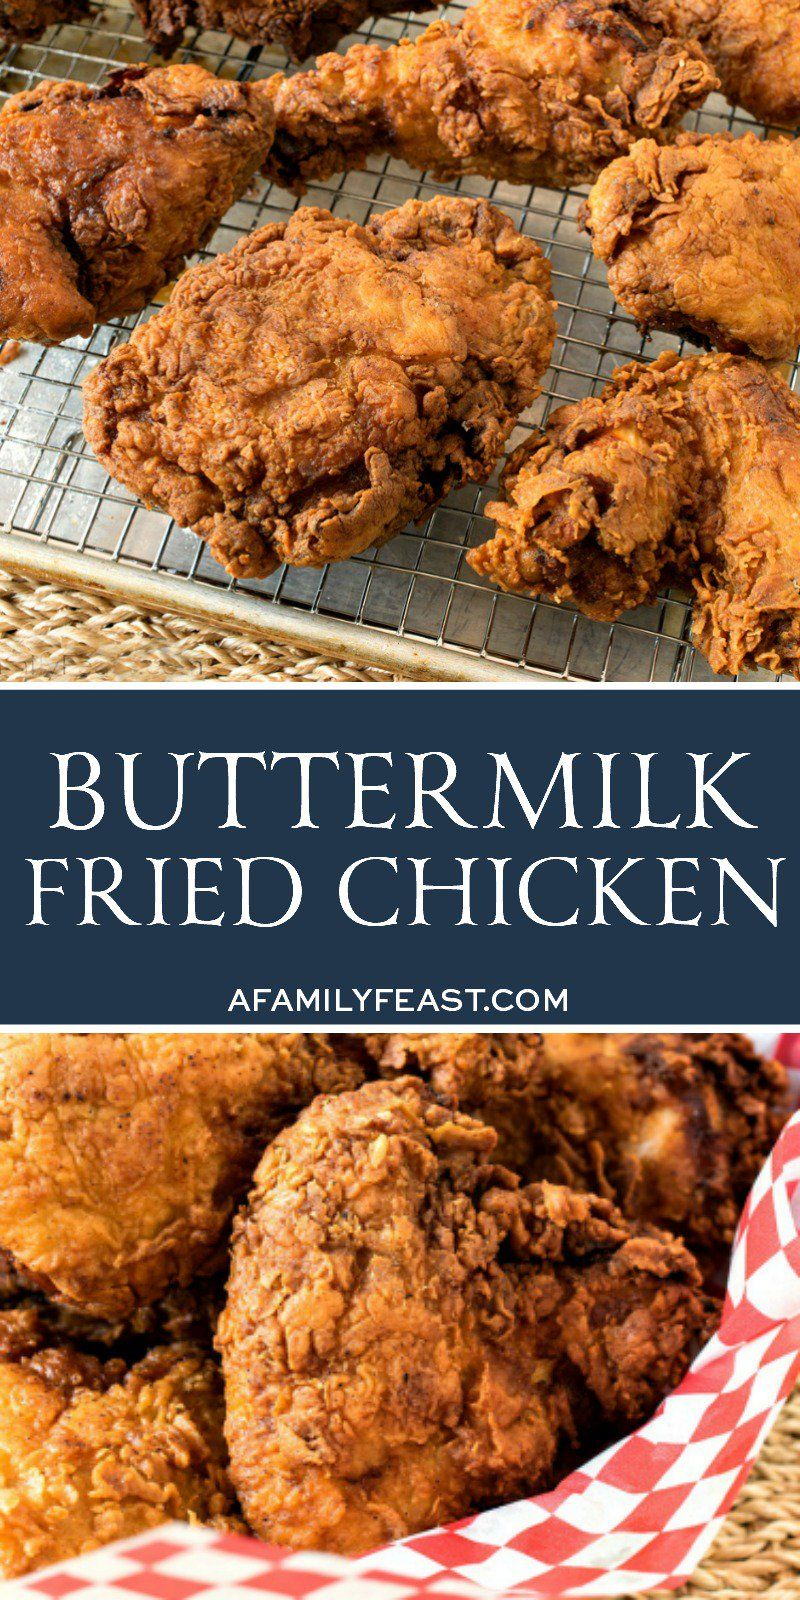 The Best Buttermilk Fried Chicken Recipe A Family Feast Recipe Buttermilk Fried Chicken Fried Chicken Recipe Southern Fried Chicken Recipes